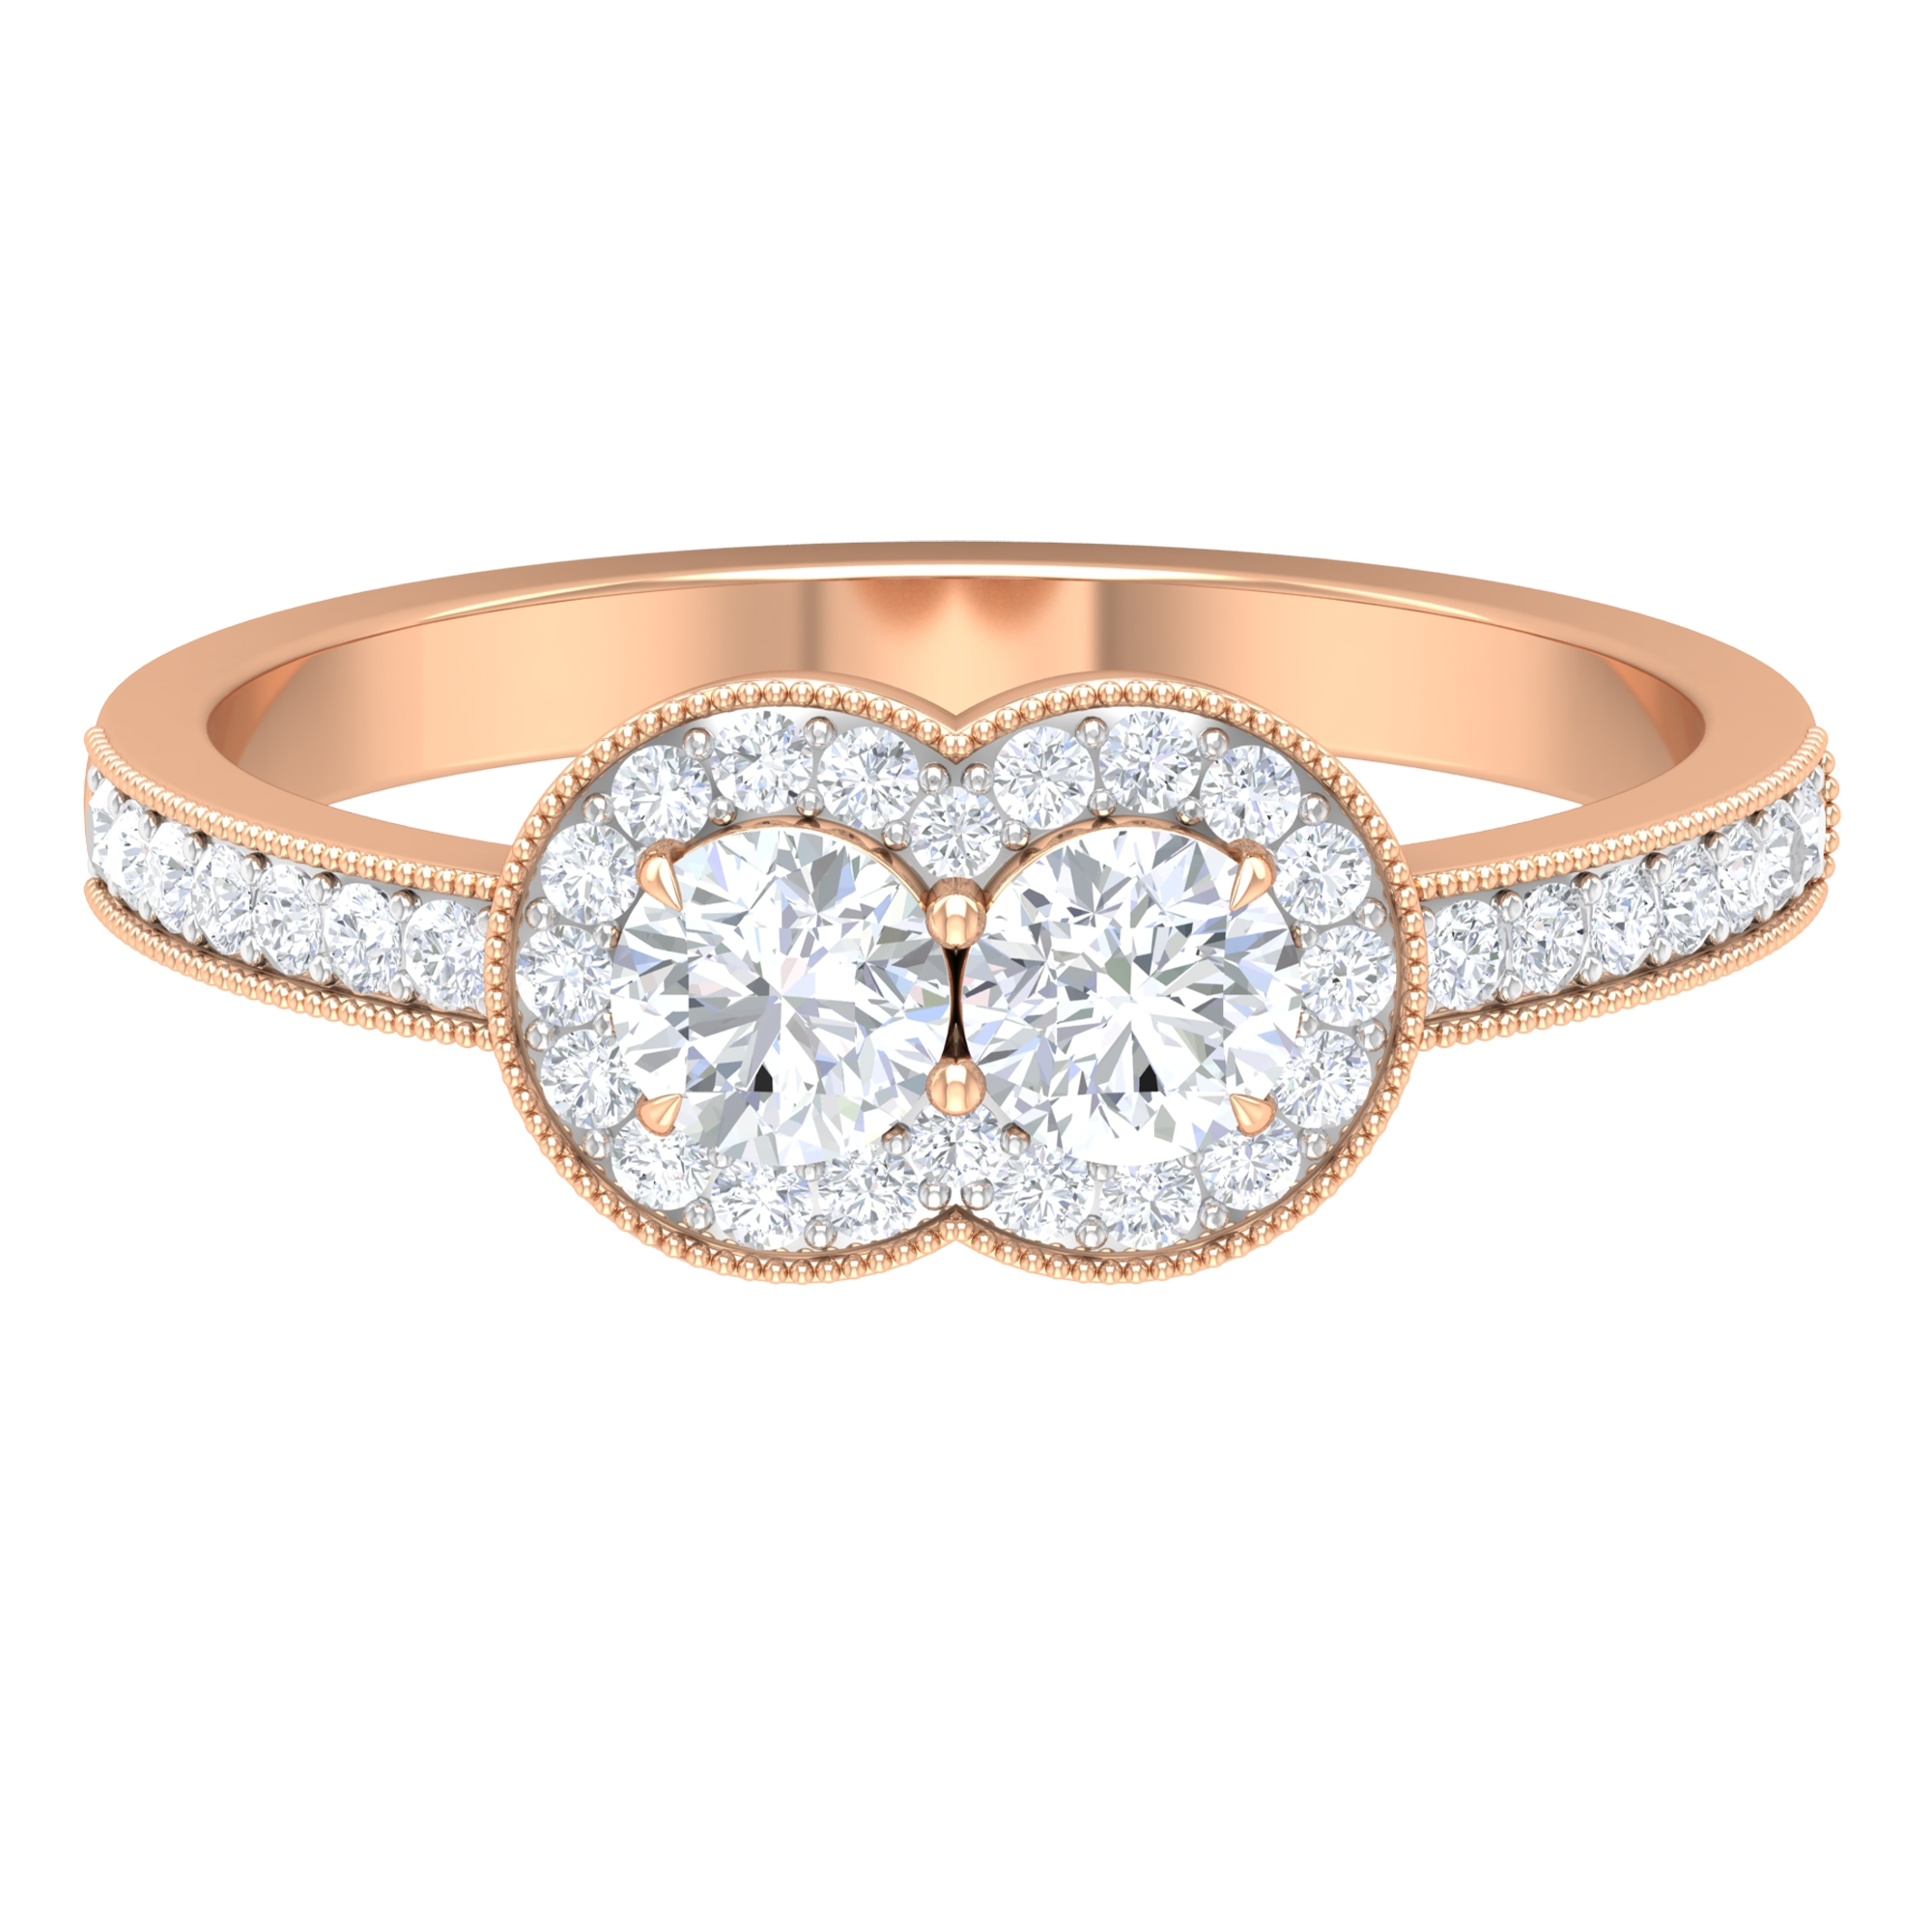 3/4 CT Diamond Accent Engagement Ring with Milgrain Details